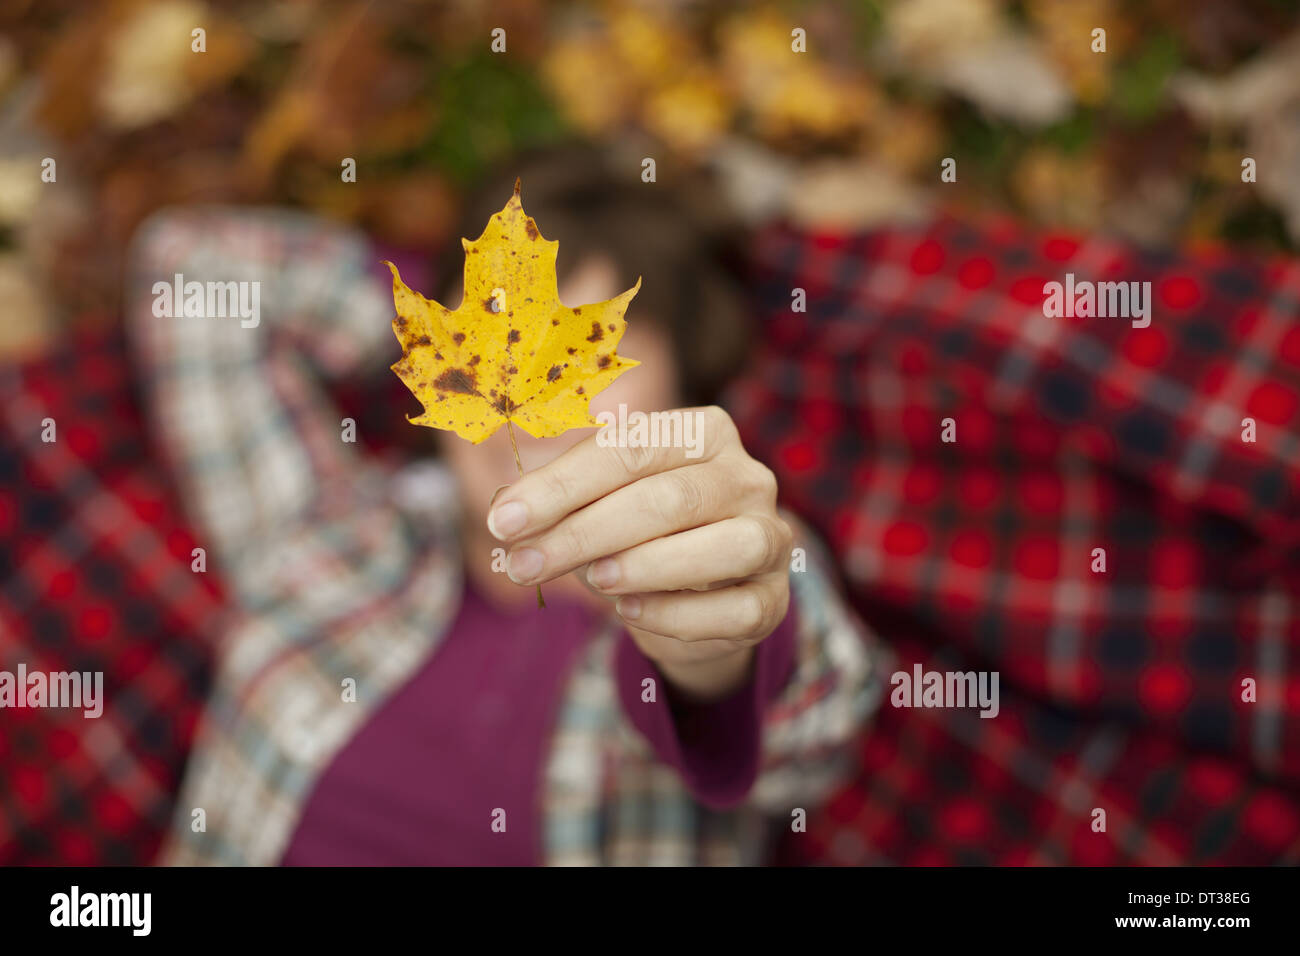 A woman lying on a red tartan picnic blanket, looking upwards, holding a maple leaf. - Stock Image